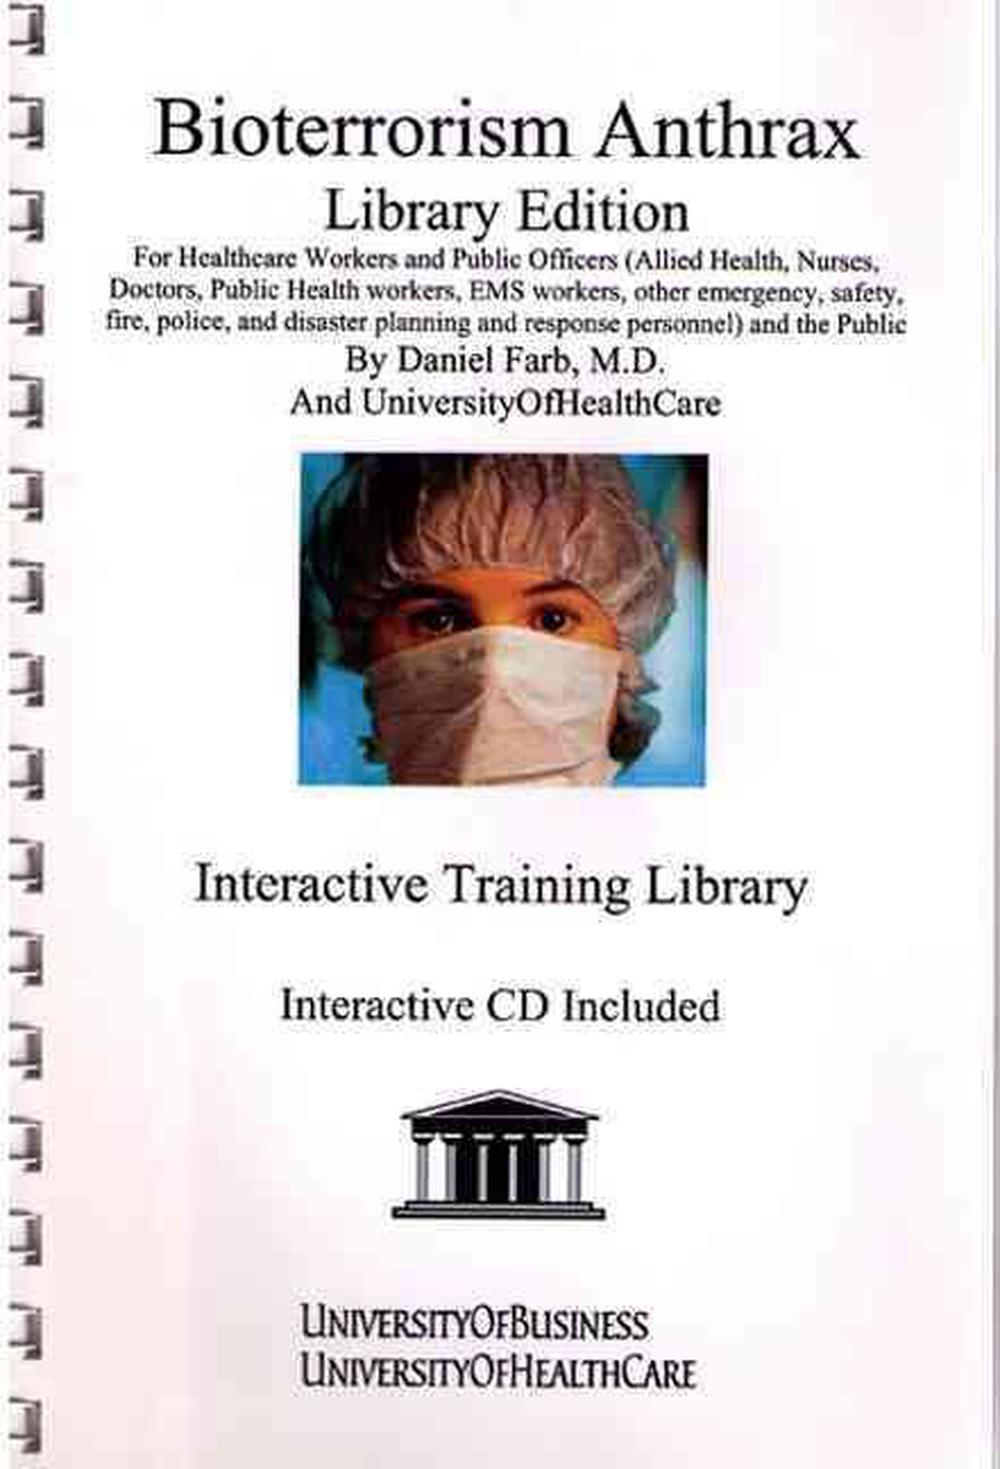 Bioterrorism Anthrax, Library Edition